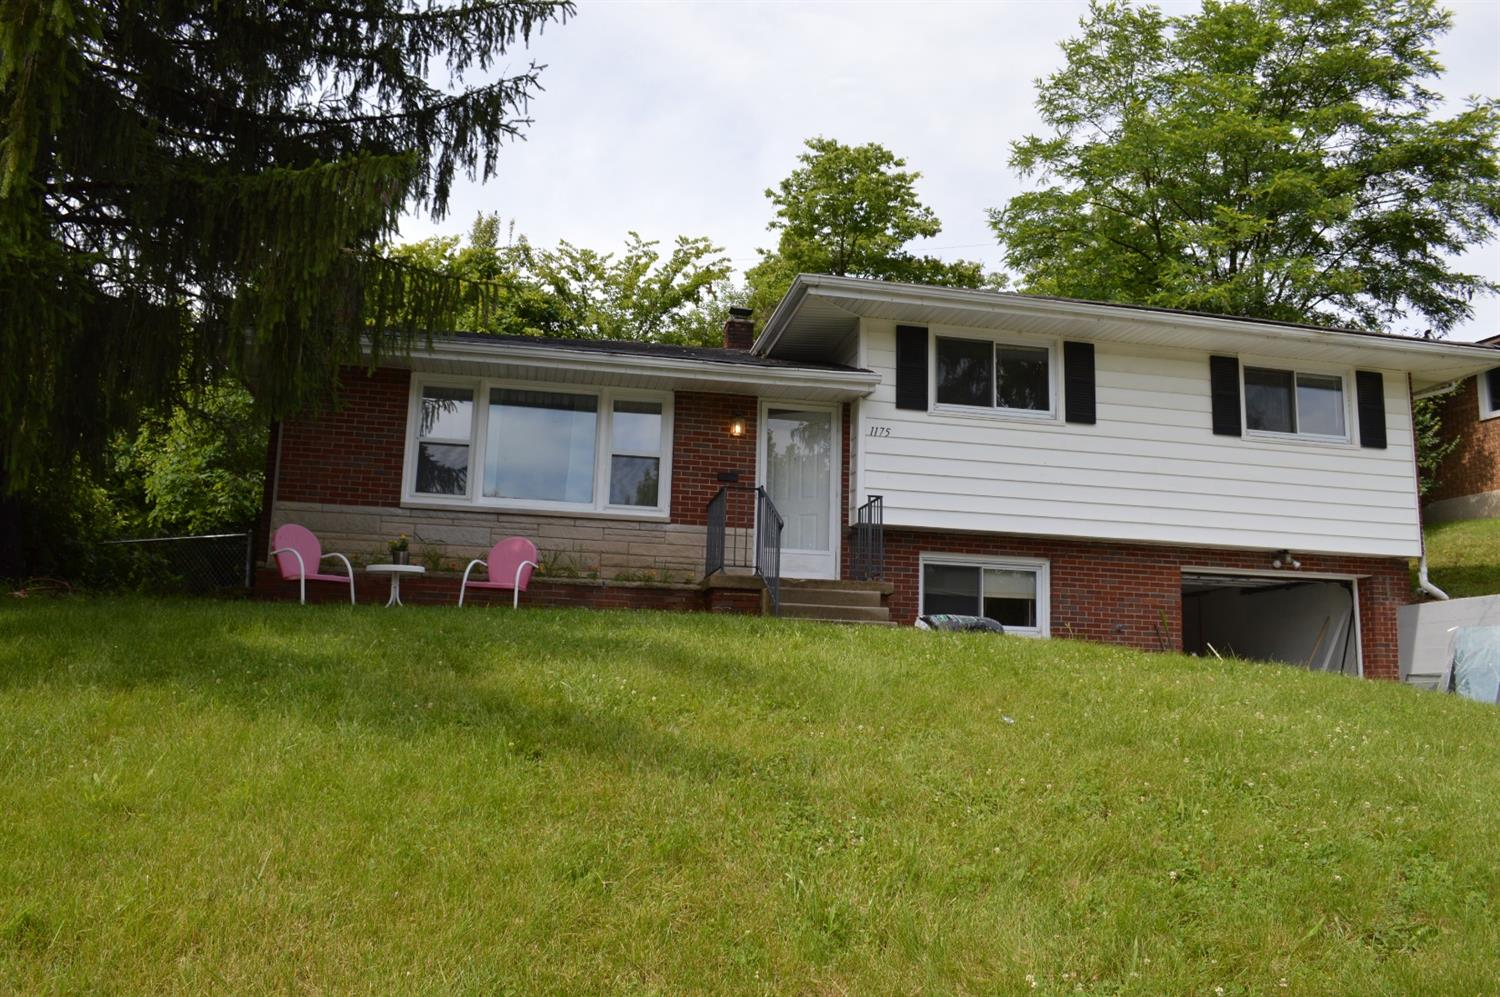 1587 Sq Ft tri level  Newly painted with new flooring and redone hardwoods through out house,  Renovated kitchen with new wood cabinets , granite counter tops. Bathroom features marble top vanity with tile shower. Roof, HVAC 8 years old.   Open house  Sunday 1 to 3. This property is agent owned. All Offer To Be Submitted By Offer Deadline of 6-21 at 7 pm, Seller Can Accept Any Offer Prior To Offer Deadline.   This house is super clean. Come take a look before it is gone.